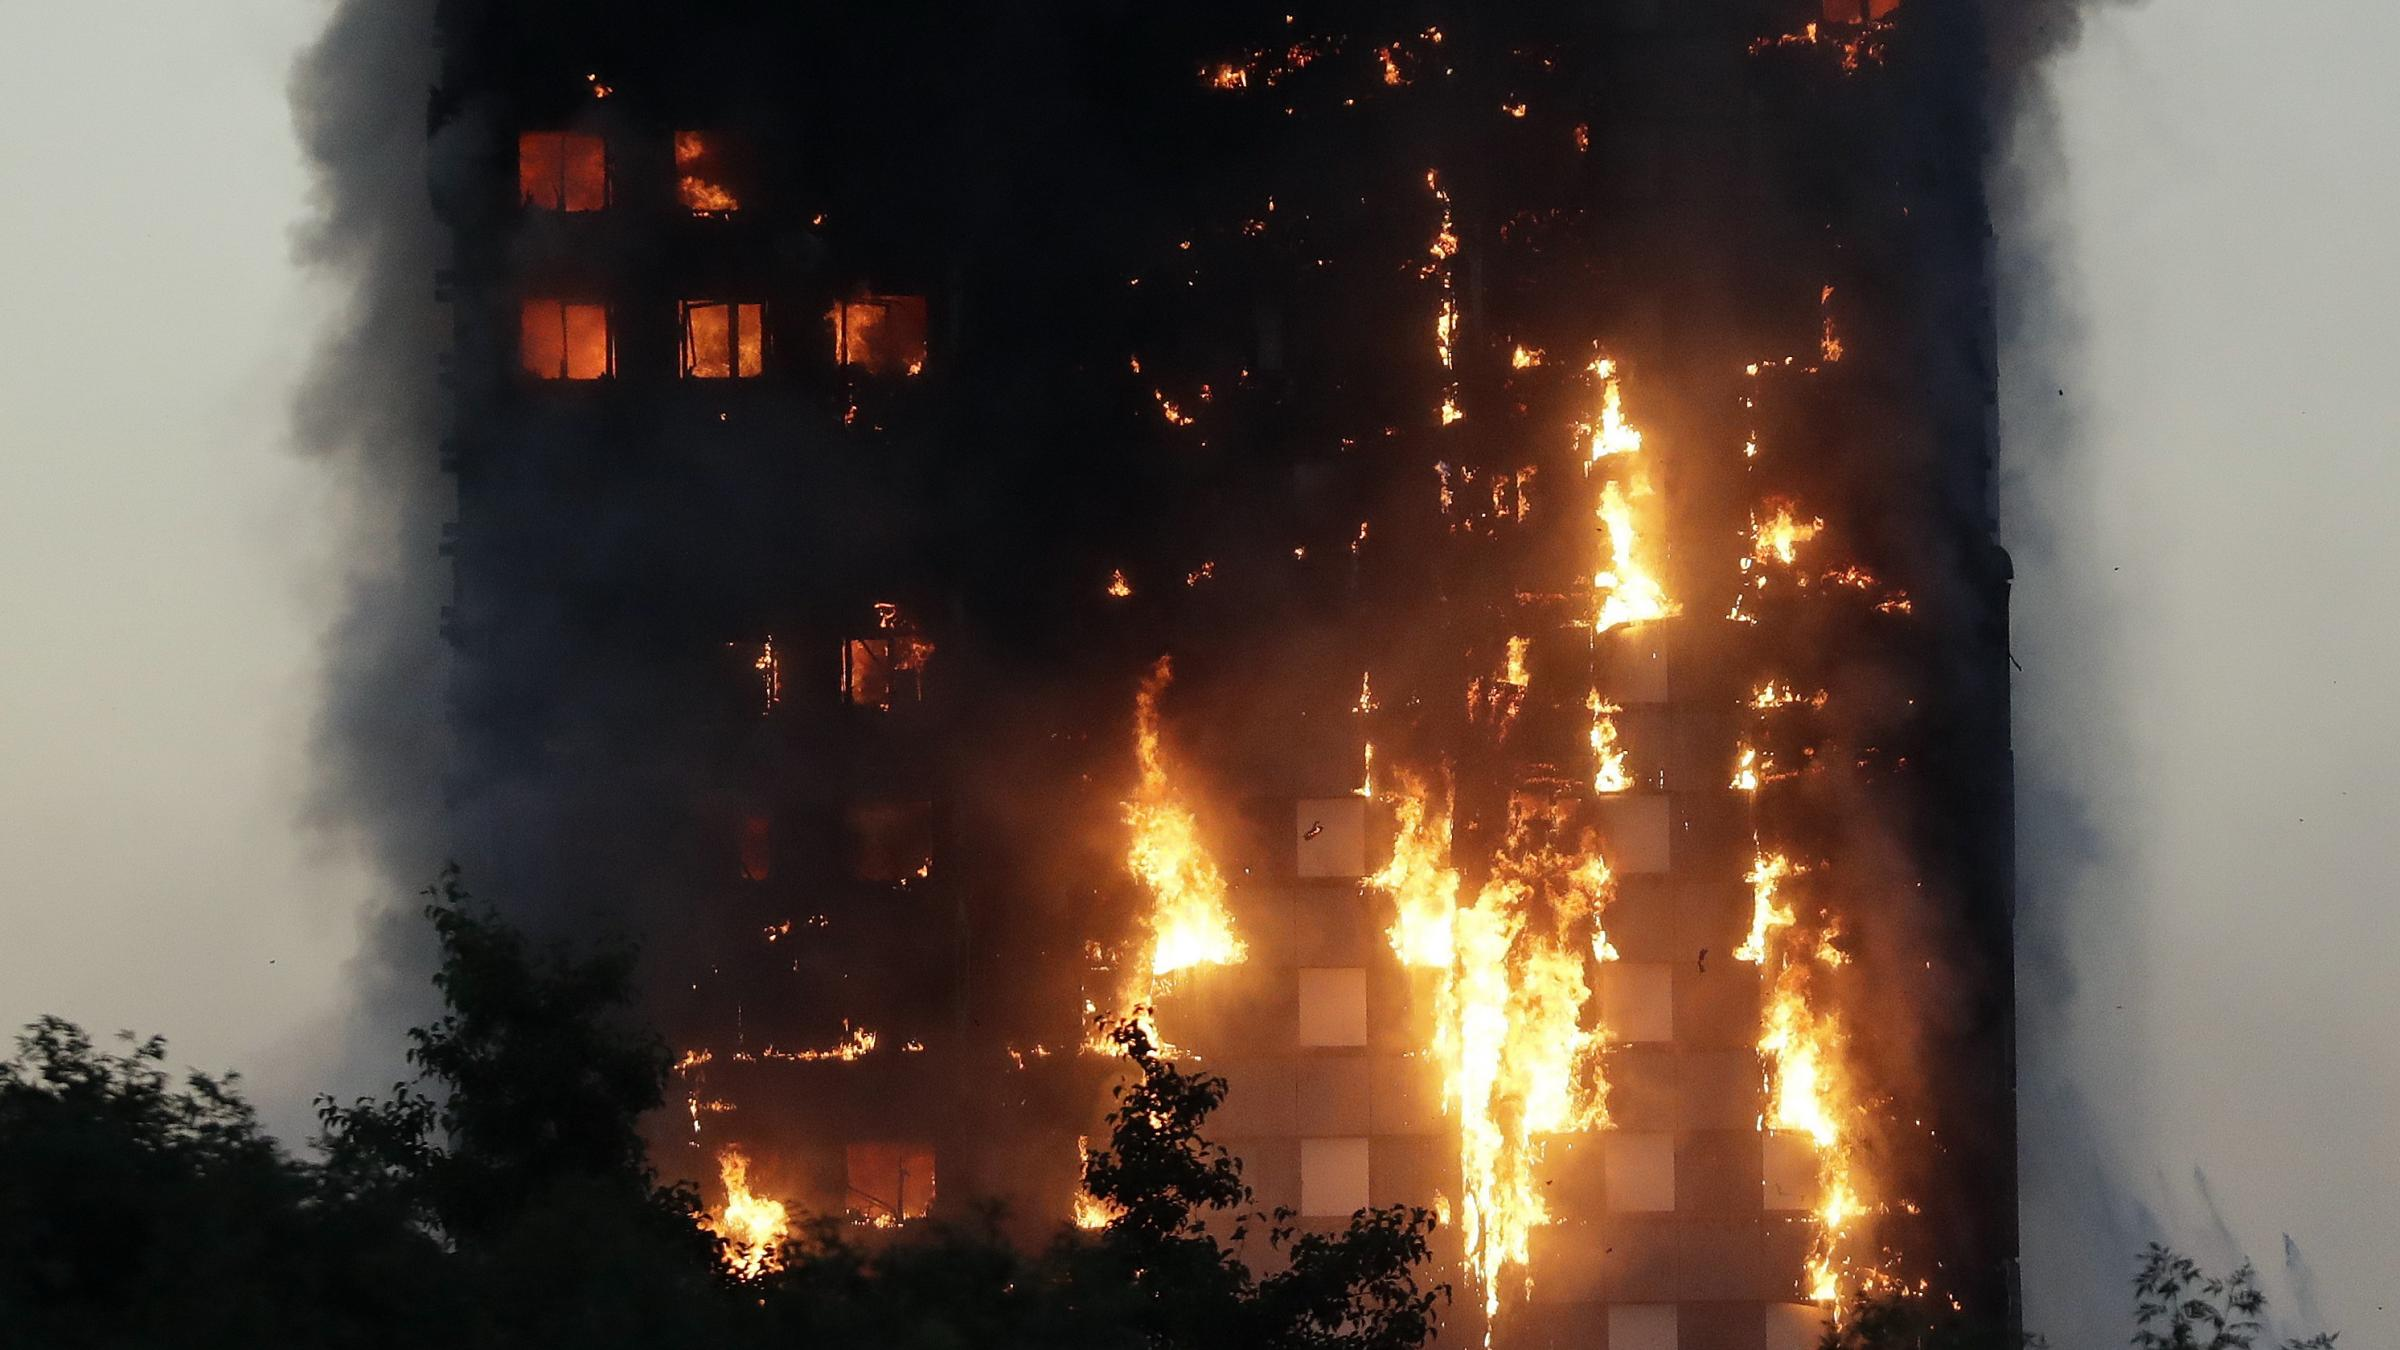 Fire engulfs 24-storey residential building in London, occupants trapped